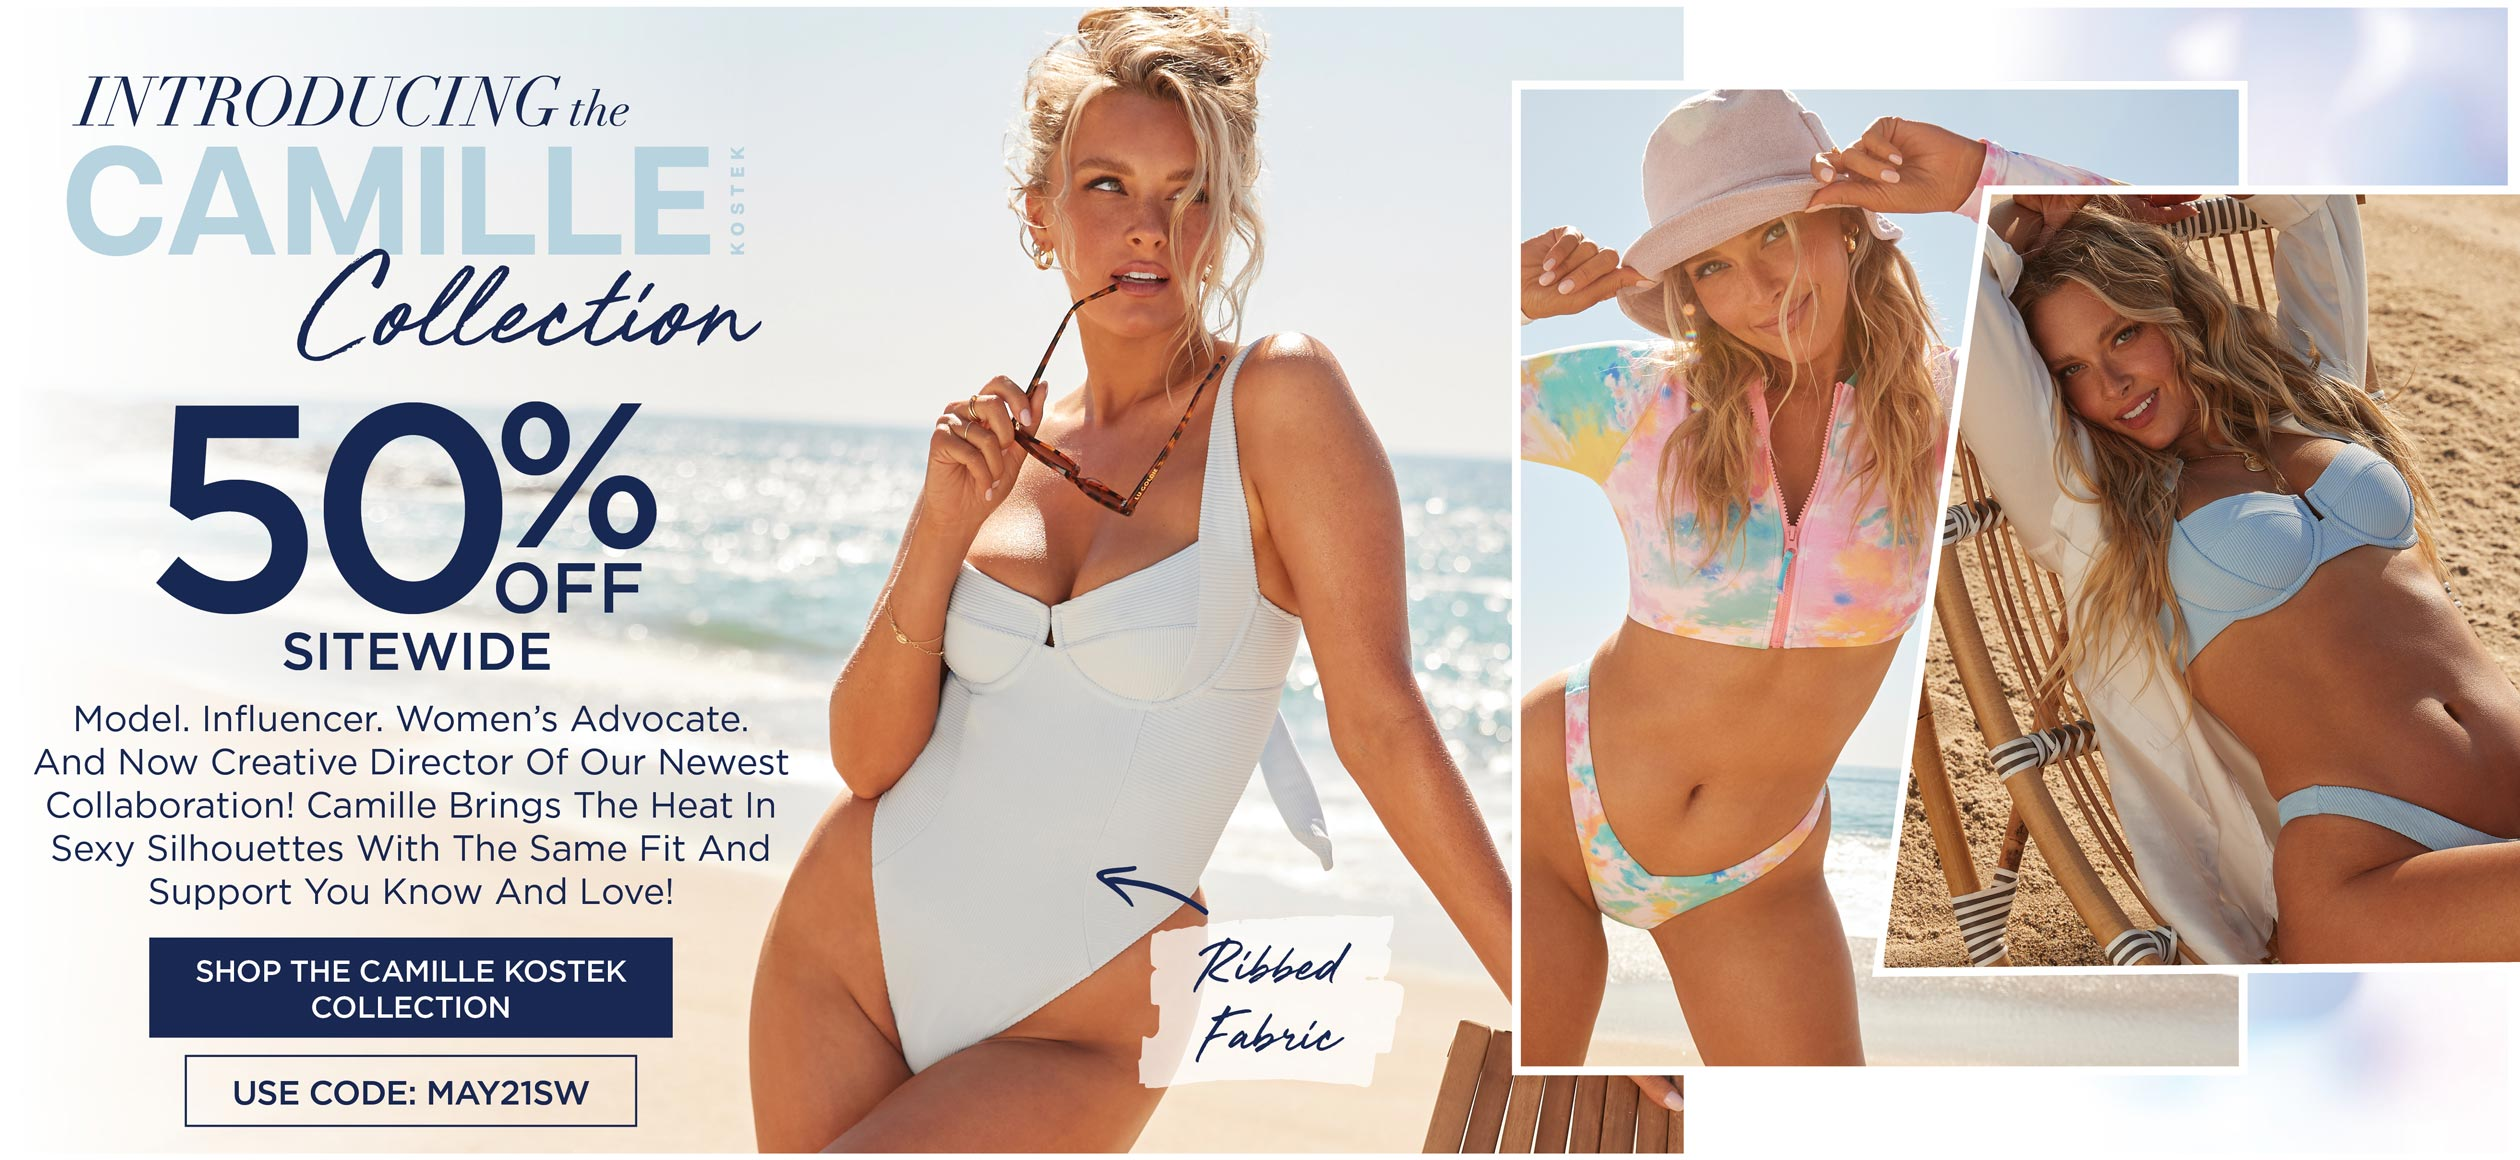 INTRODUCING THE CAMILLE KOSTEK COLLECTION